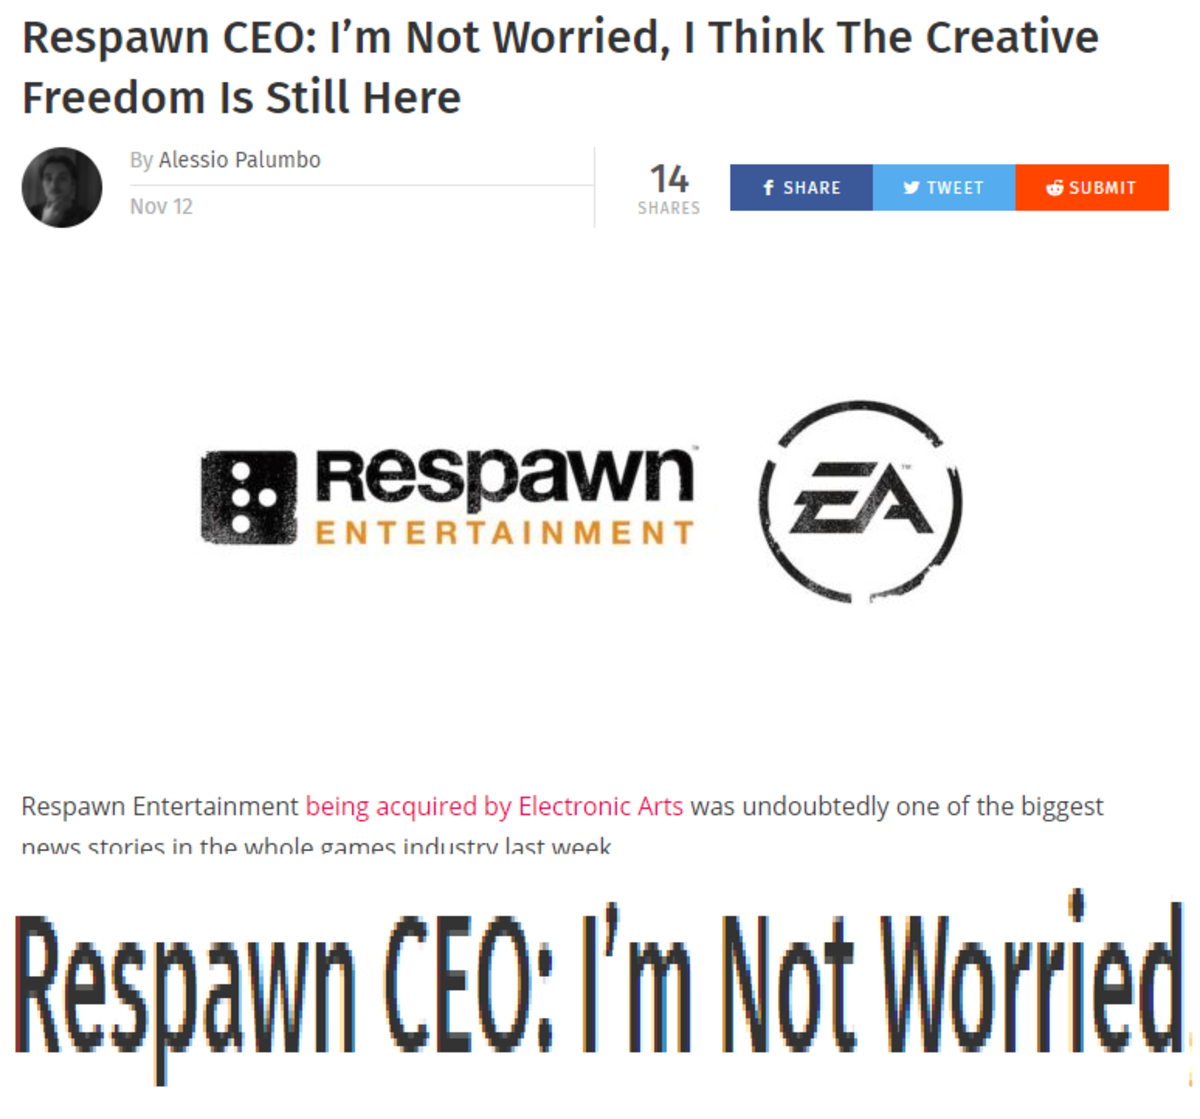 You will be. join list: VideoGameHumor (1706 subs)Mention Clicks: 598456Msgs Sent: 5842419Mention History. Respawn CEO: I' m Not Worried, I Think The Creative F